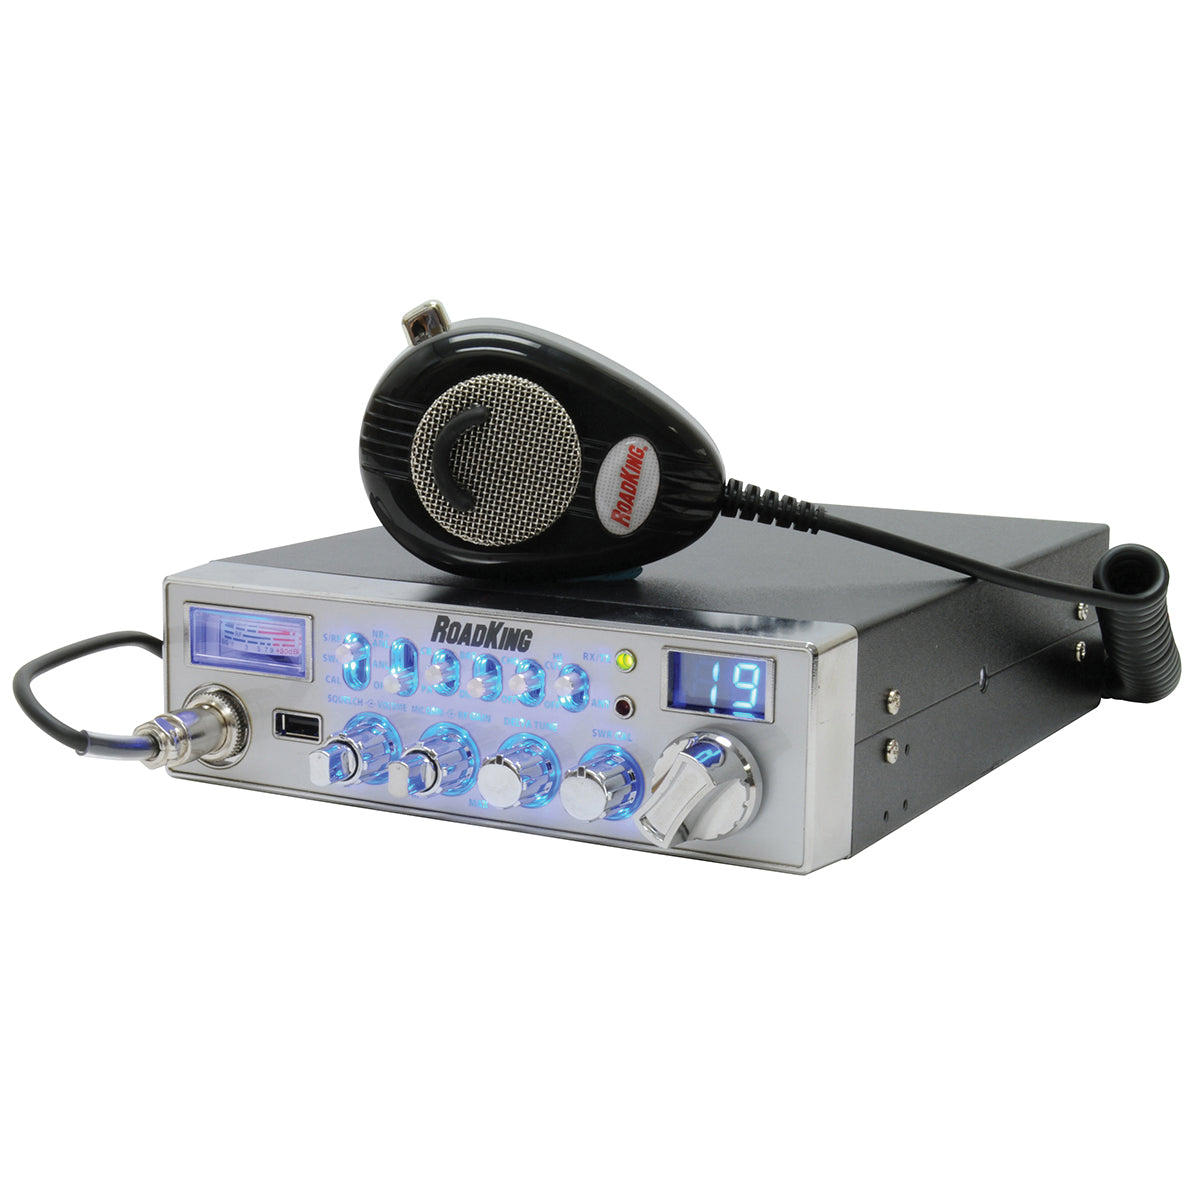 40 Channel CB Radio with USB Port and RK56NC Mic